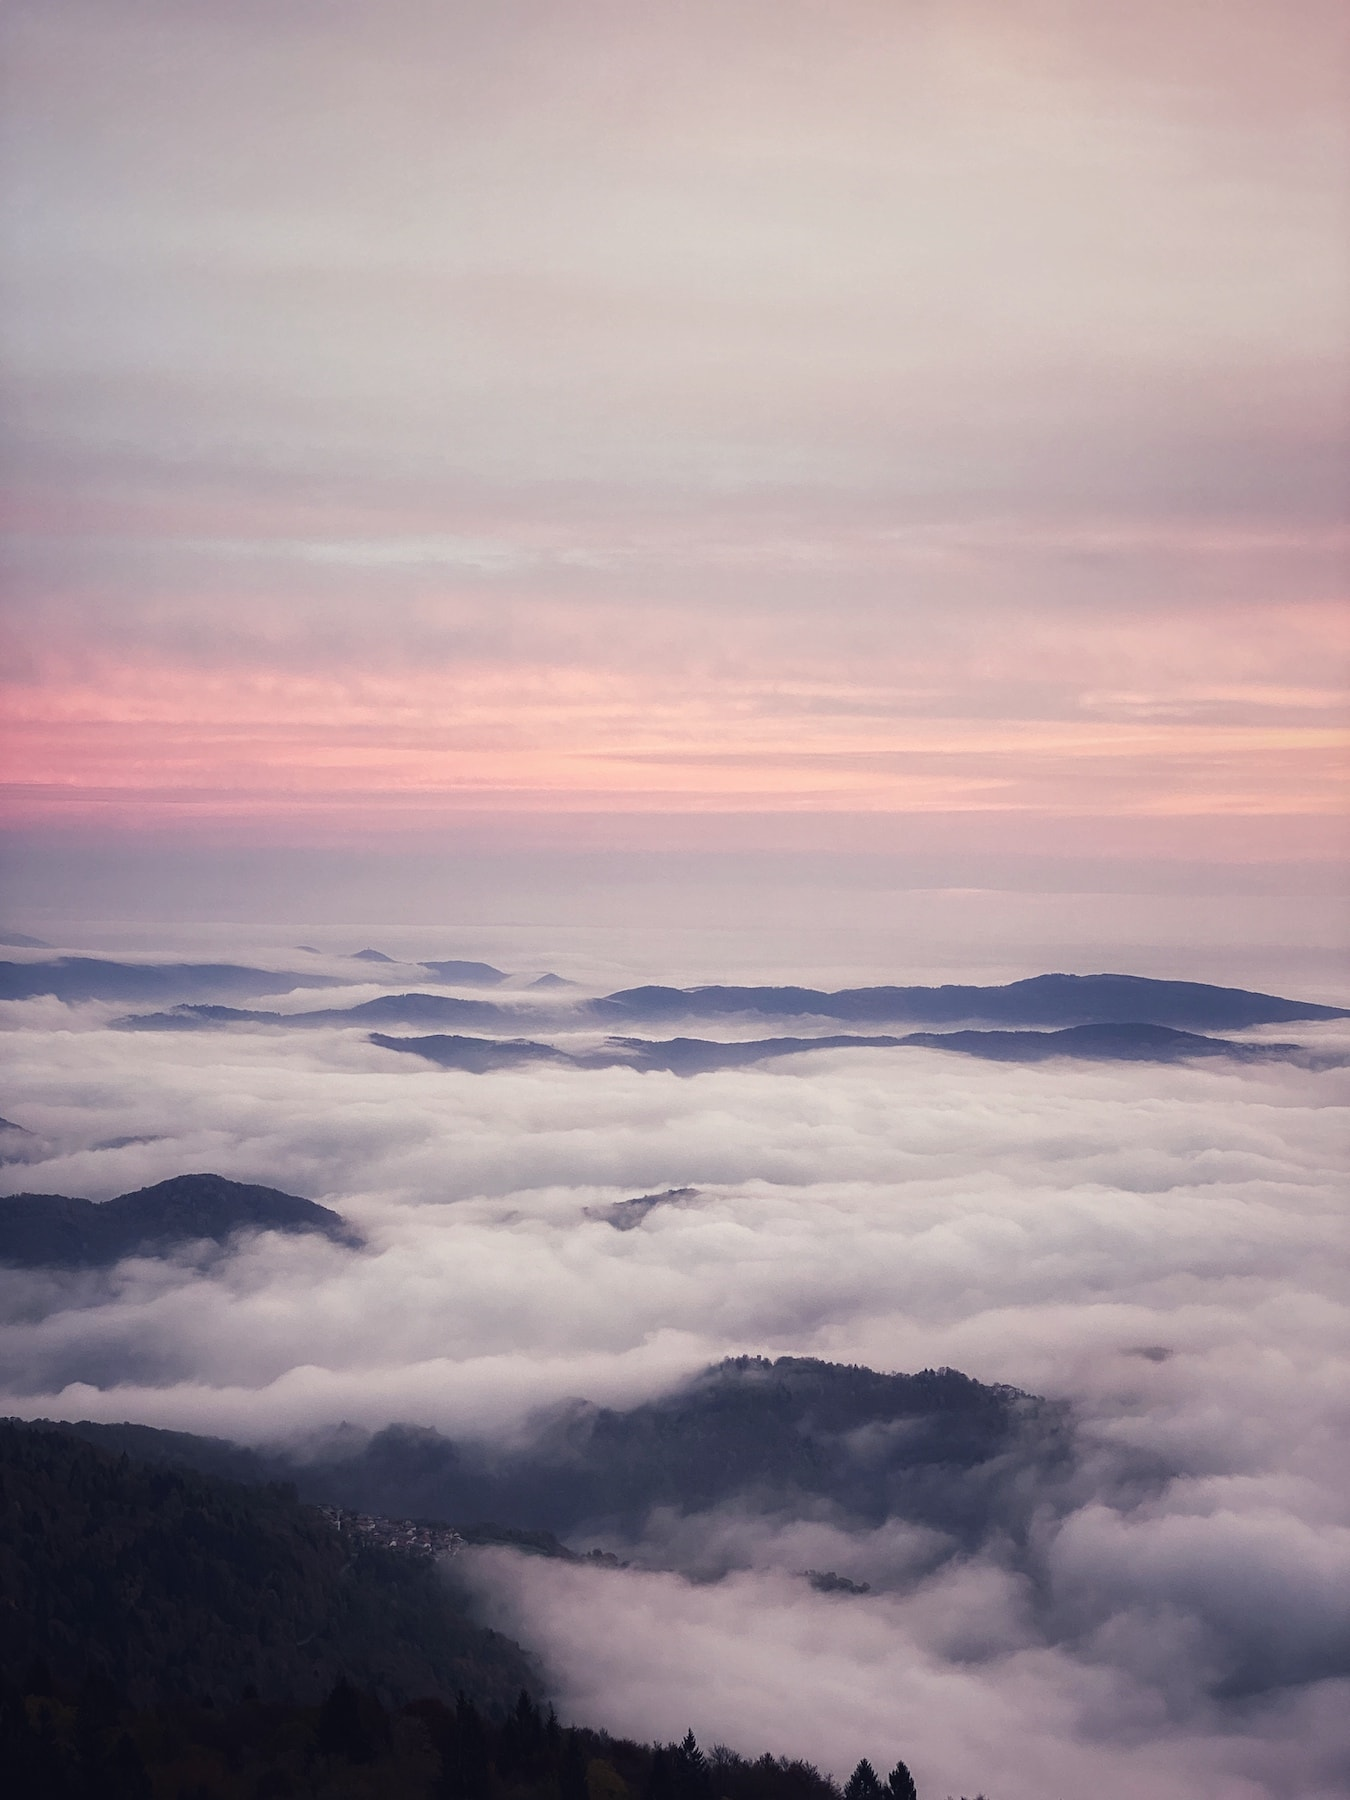 The phenomenon of thermal inversion with a sea of clouds resting over the mountains during a pink sunset